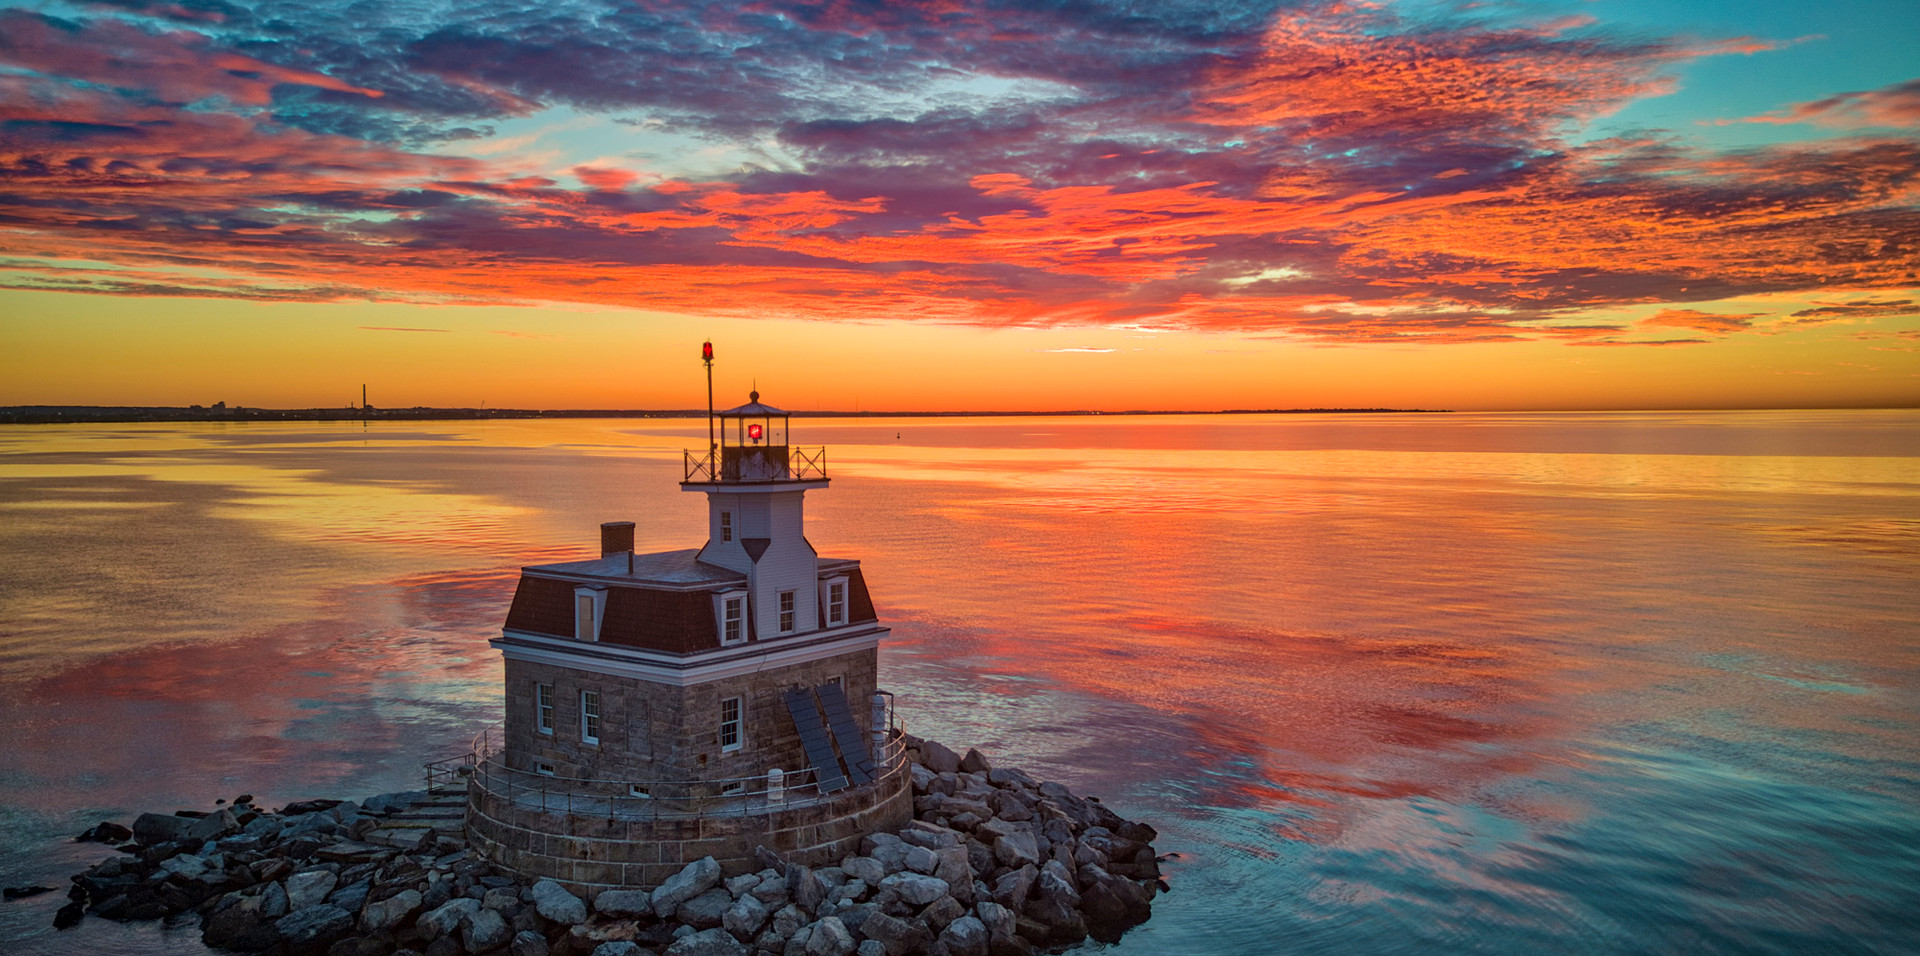 Penfield Reef Lighthouse